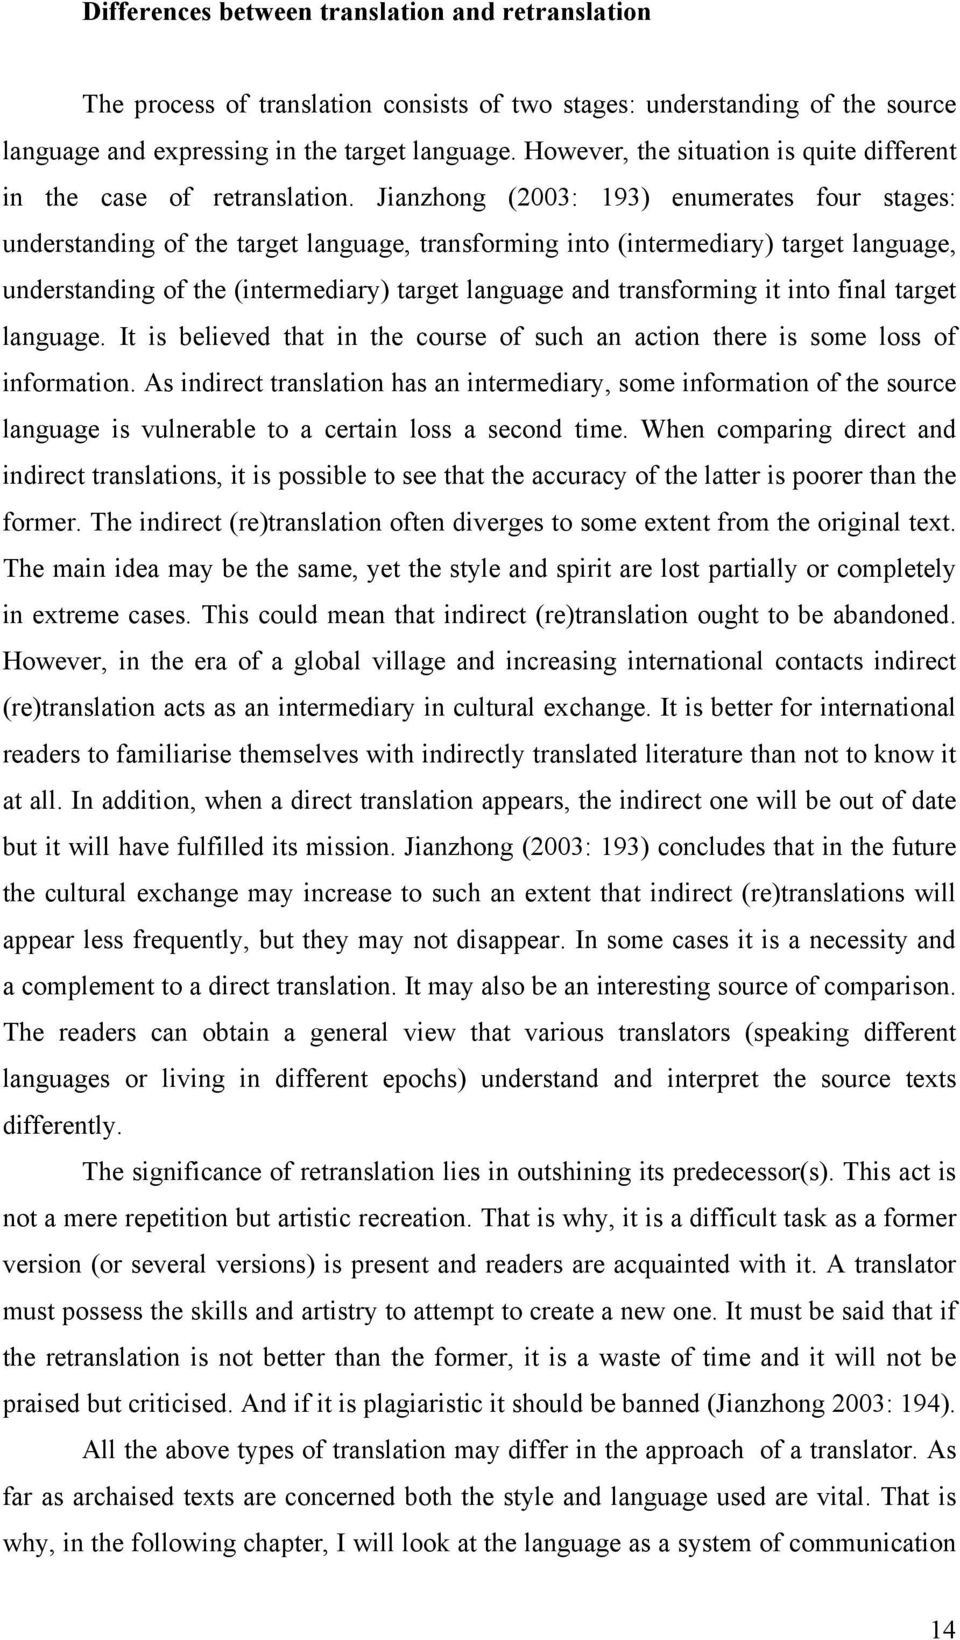 Jianzhong (2003: 193) enumerates four stages: understanding of the target language, transforming into (intermediary) target language, understanding of the (intermediary) target language and